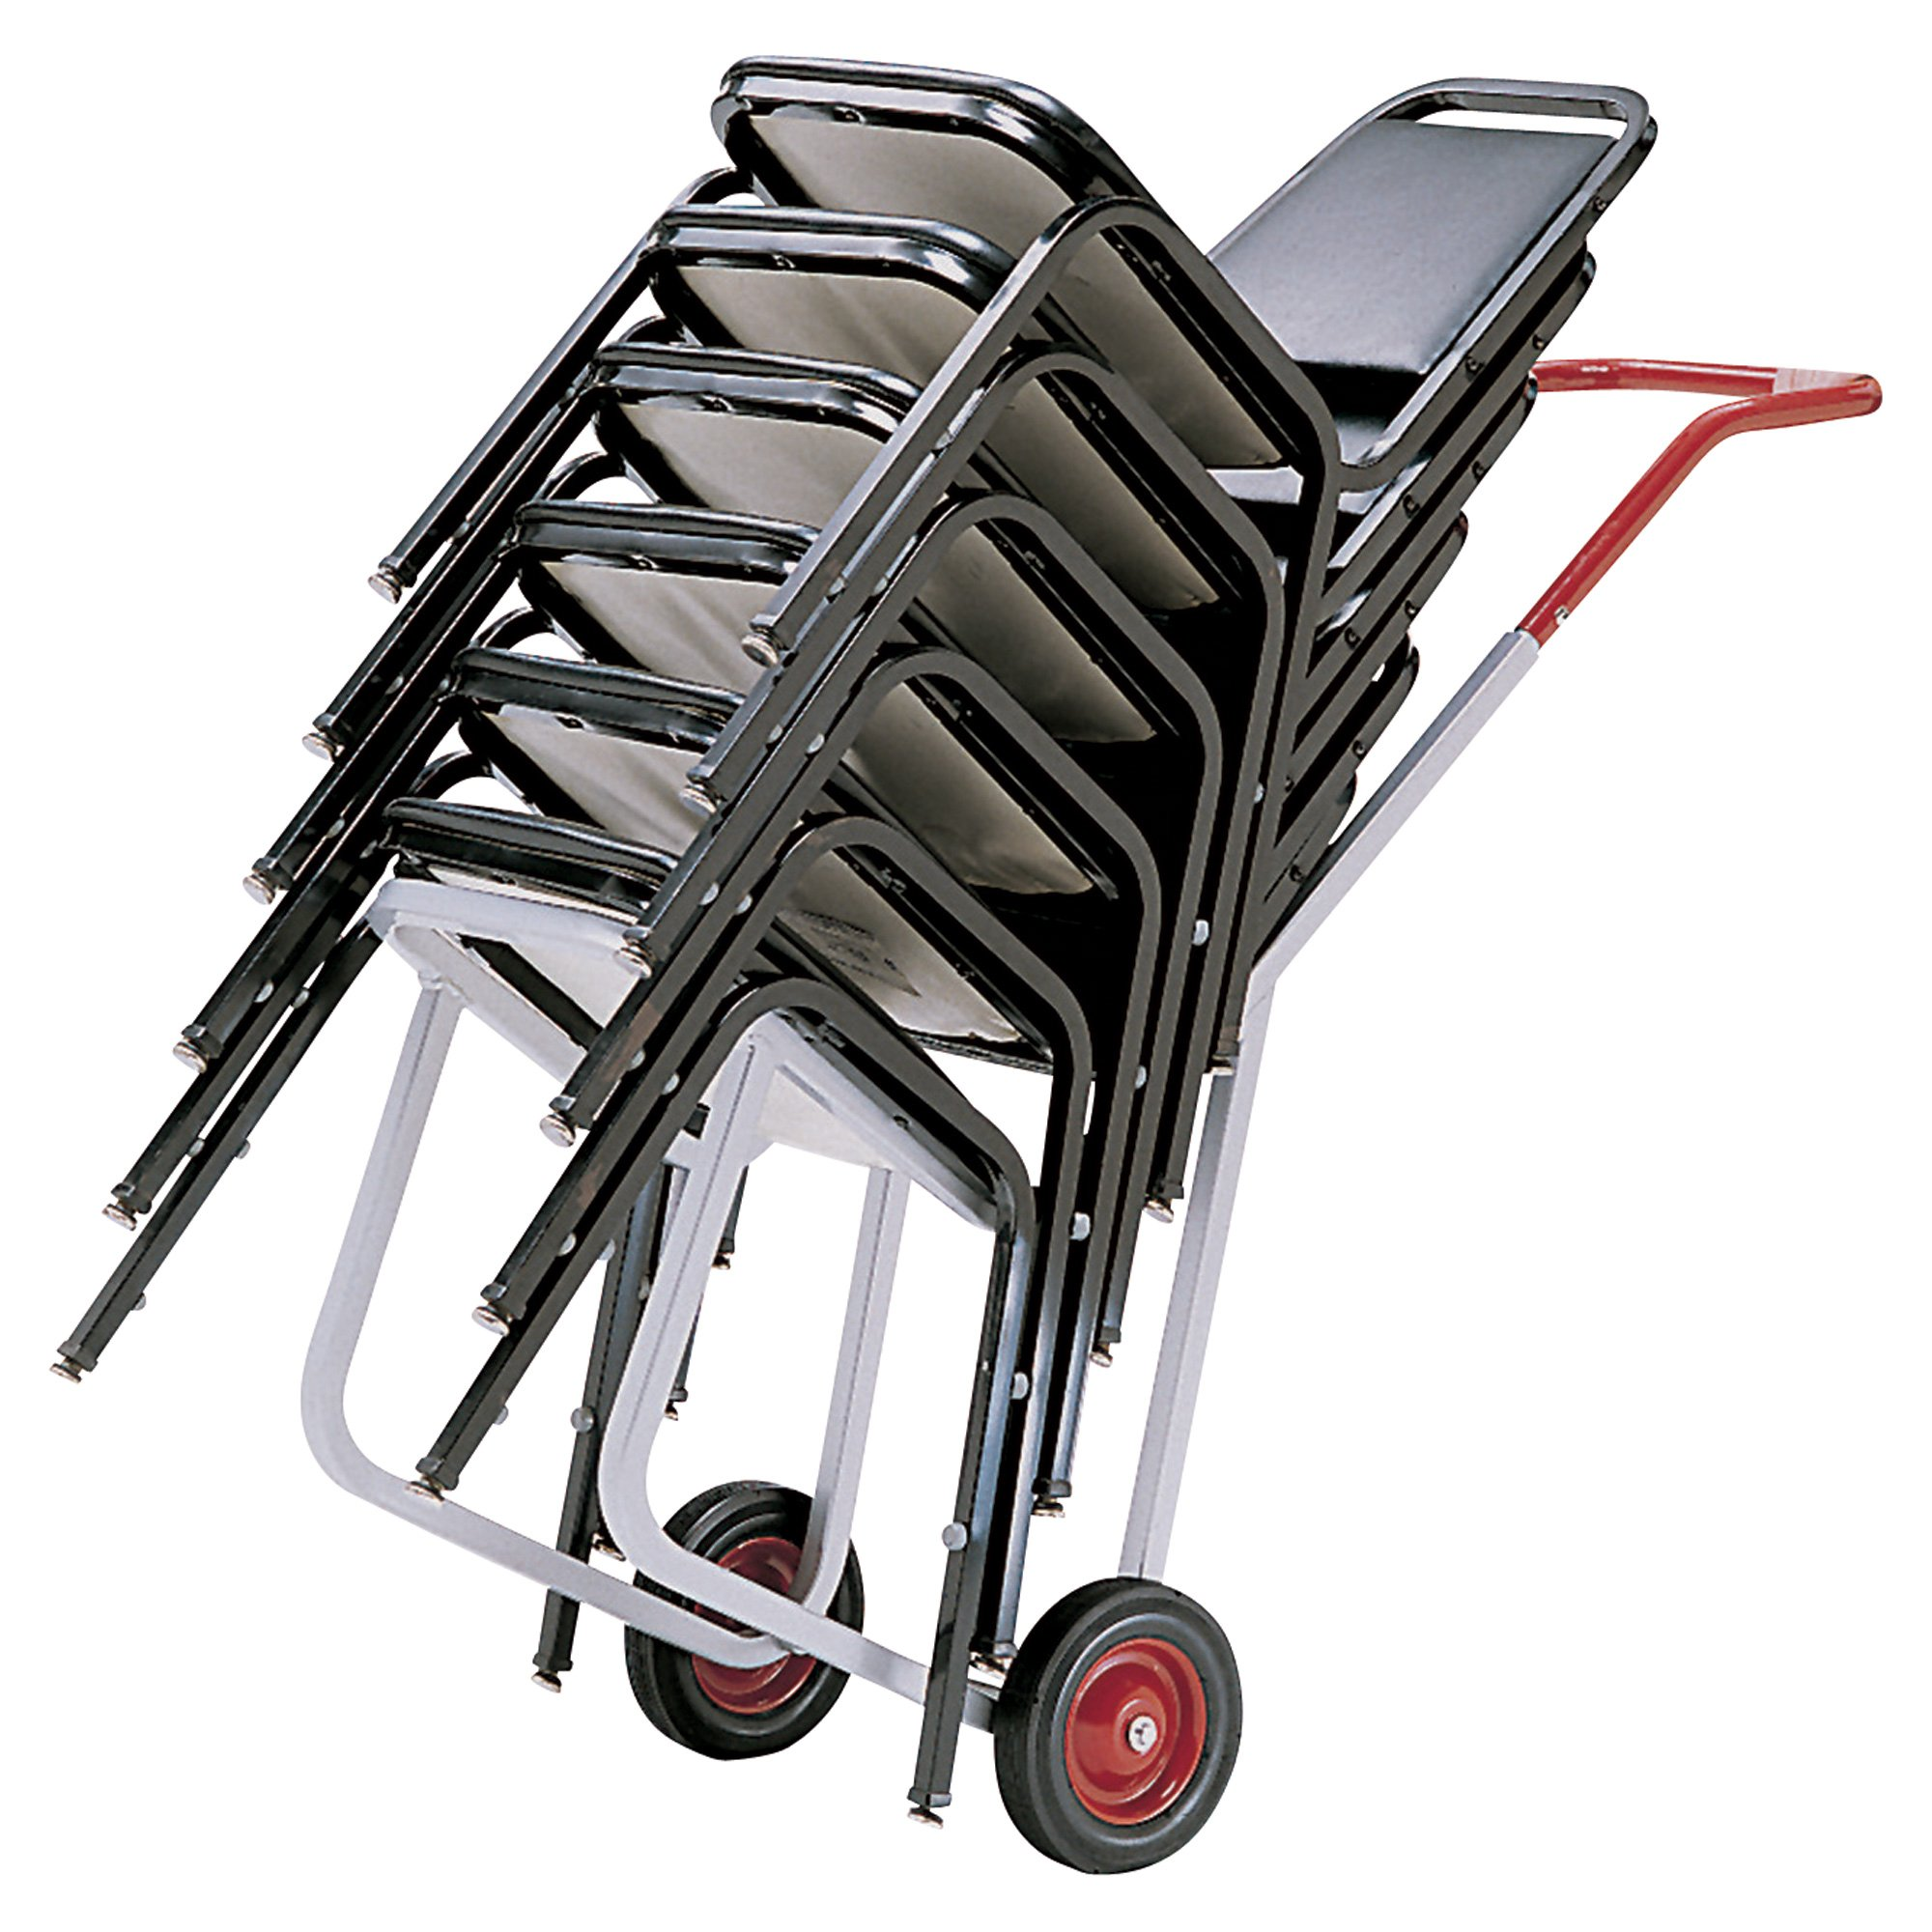 Raymond Stacked Chair Dolly - 16-Chair Capacity, Model# 500